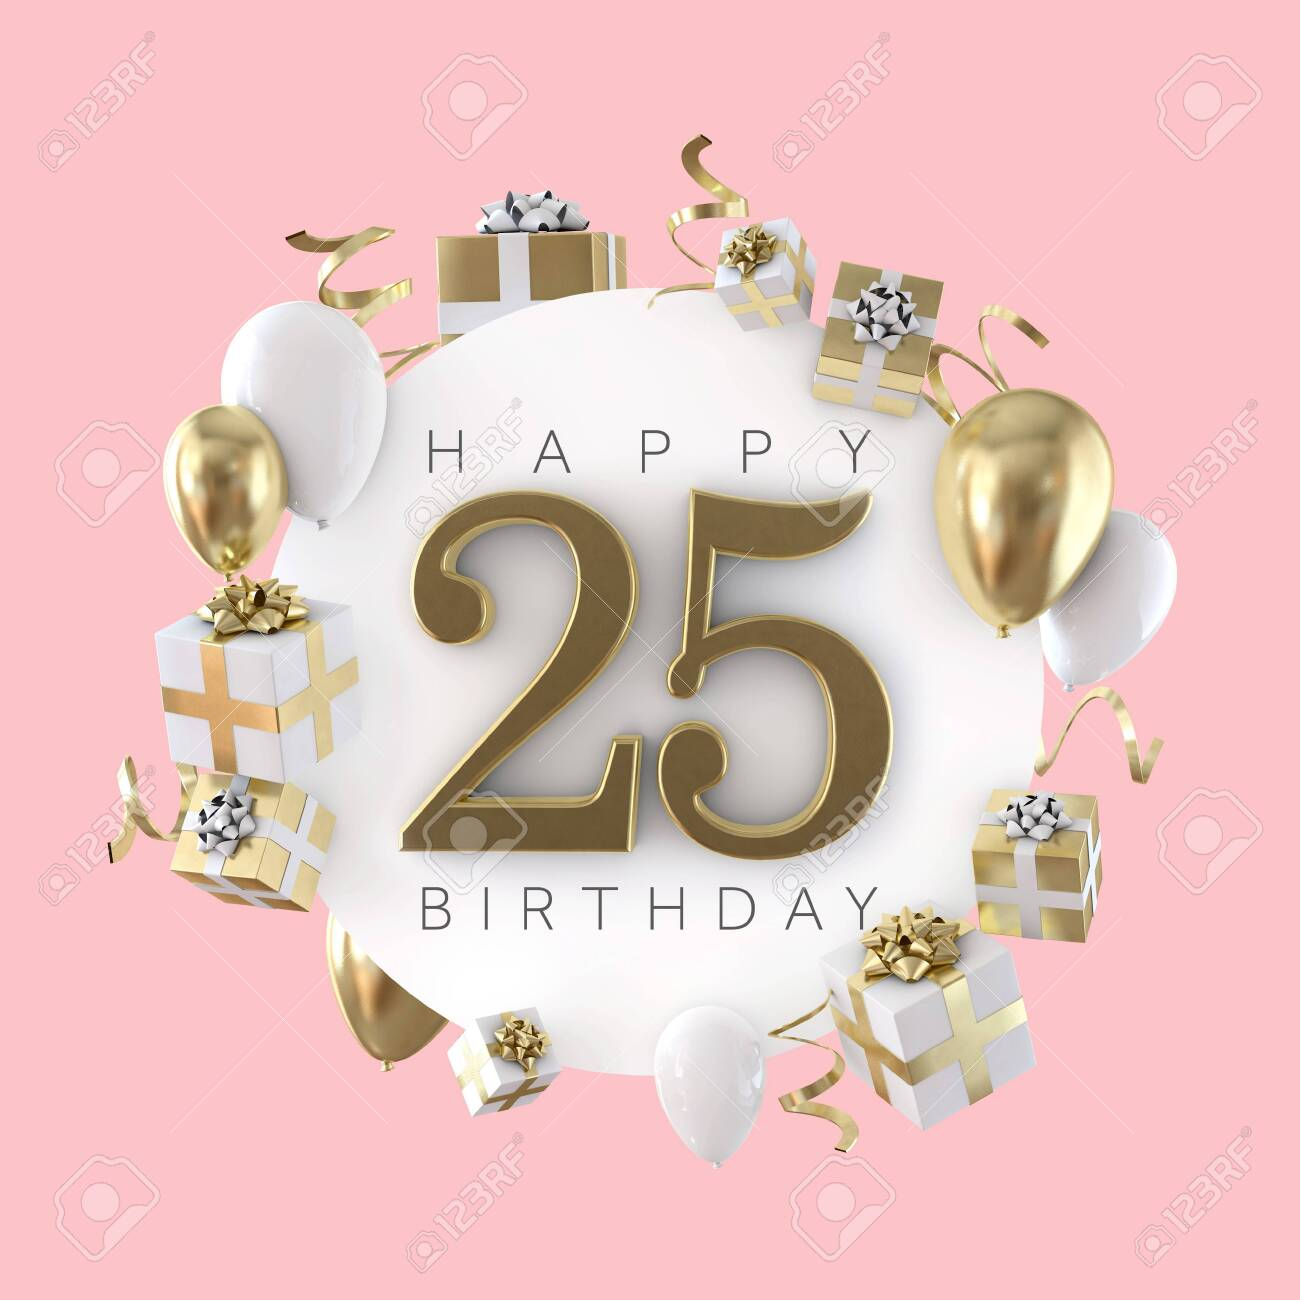 Happy 25th Birthday Party Composition With Balloons And Presents Stock Photo Picture And Royalty Free Image Image 119694751